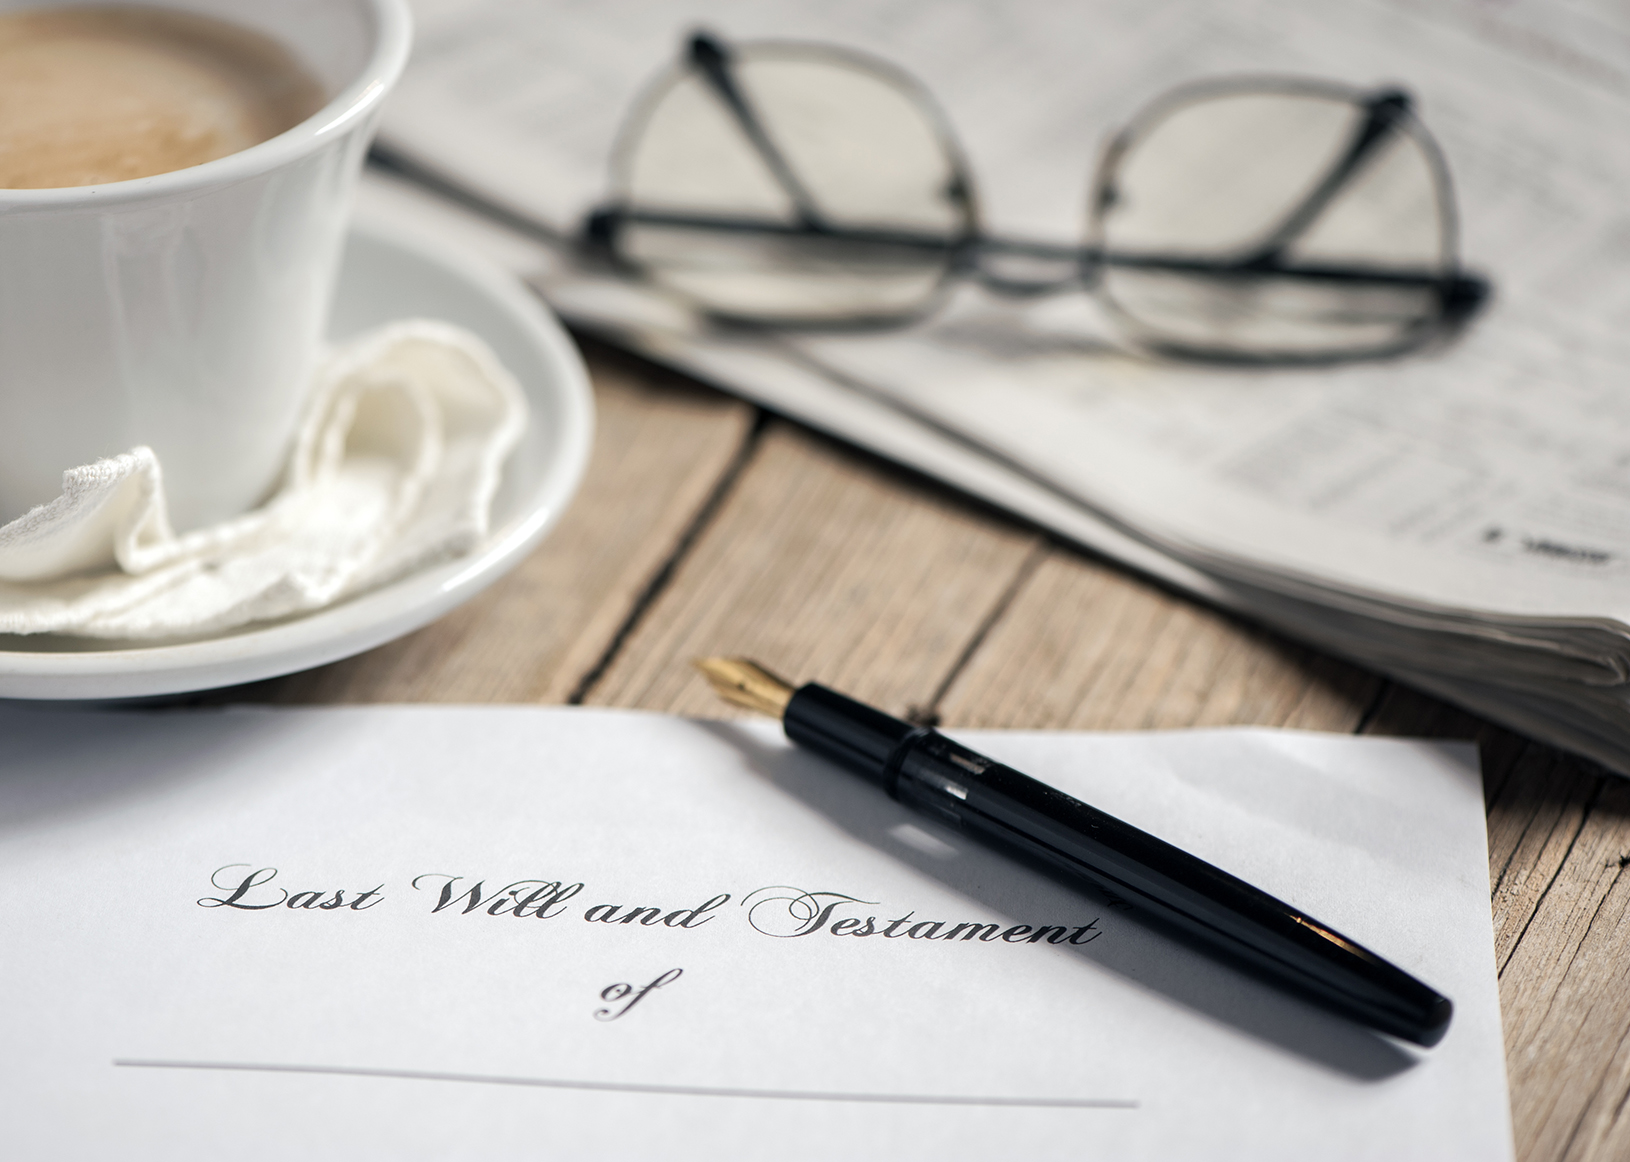 Wills & Probate - We understand that making a Will, preparing a Lasting Power of Attorney or applying for Probate on the death of a loved one are sensitive issues.